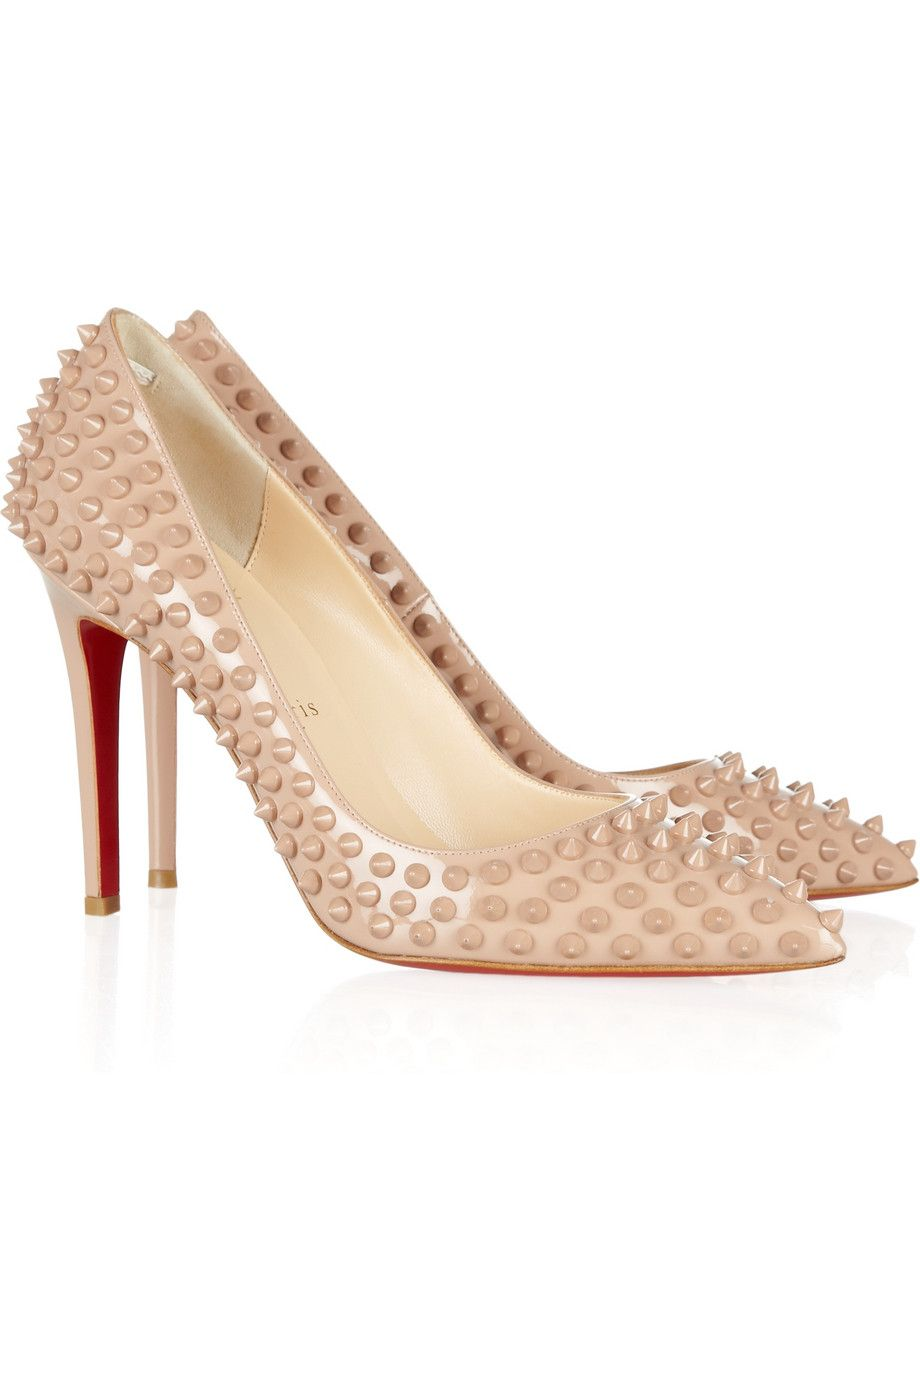 Christian Louboutin - Pigalle 100 spiked patent-leather pumps